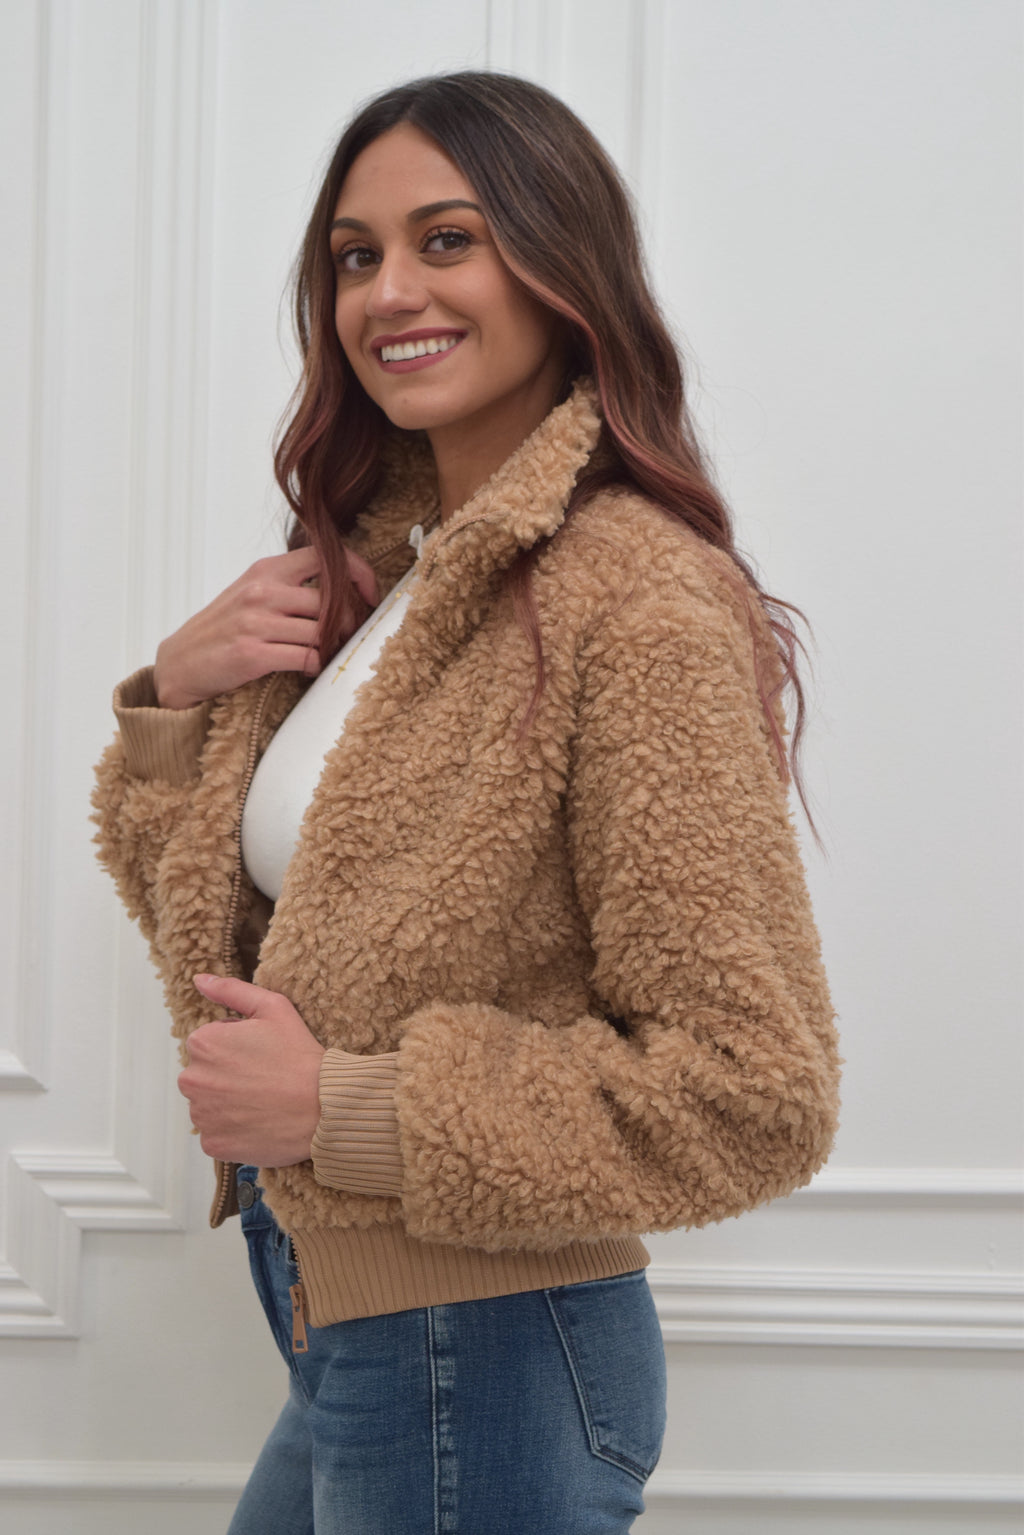 Caramel Latte teddy jacket